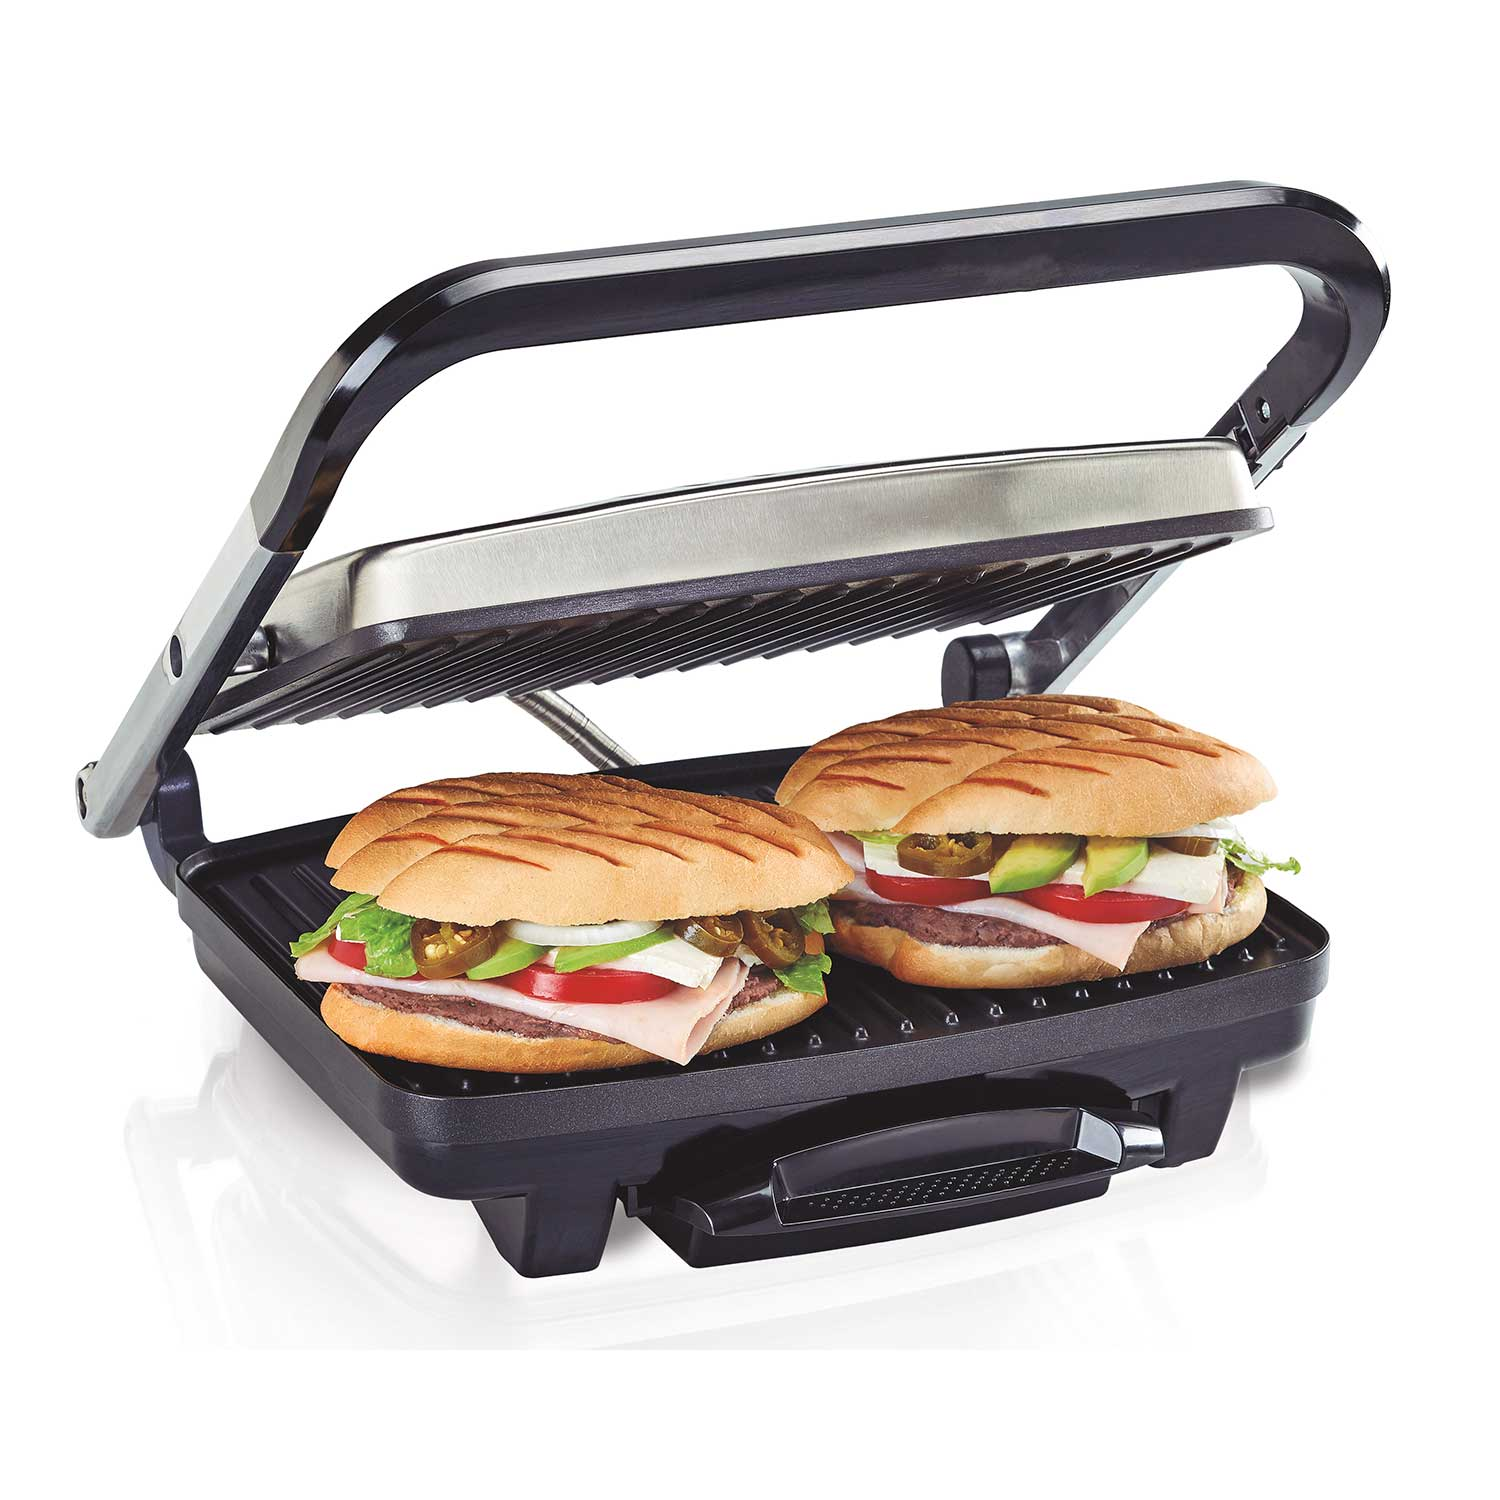 Panini Press & Indoor Grill (25410)